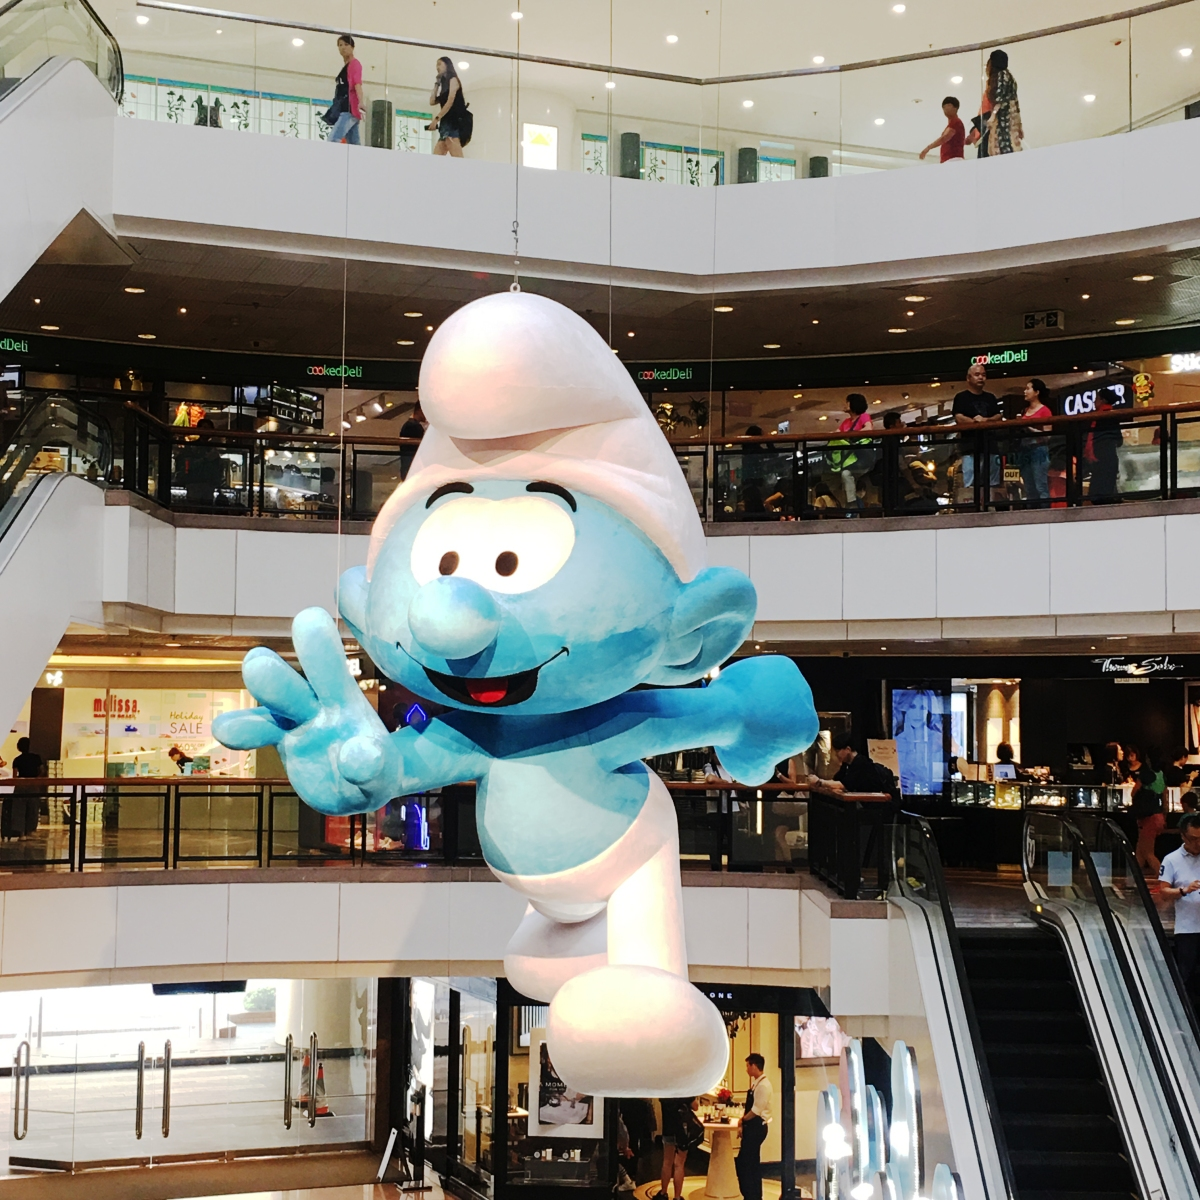 Smurf's Exhibition